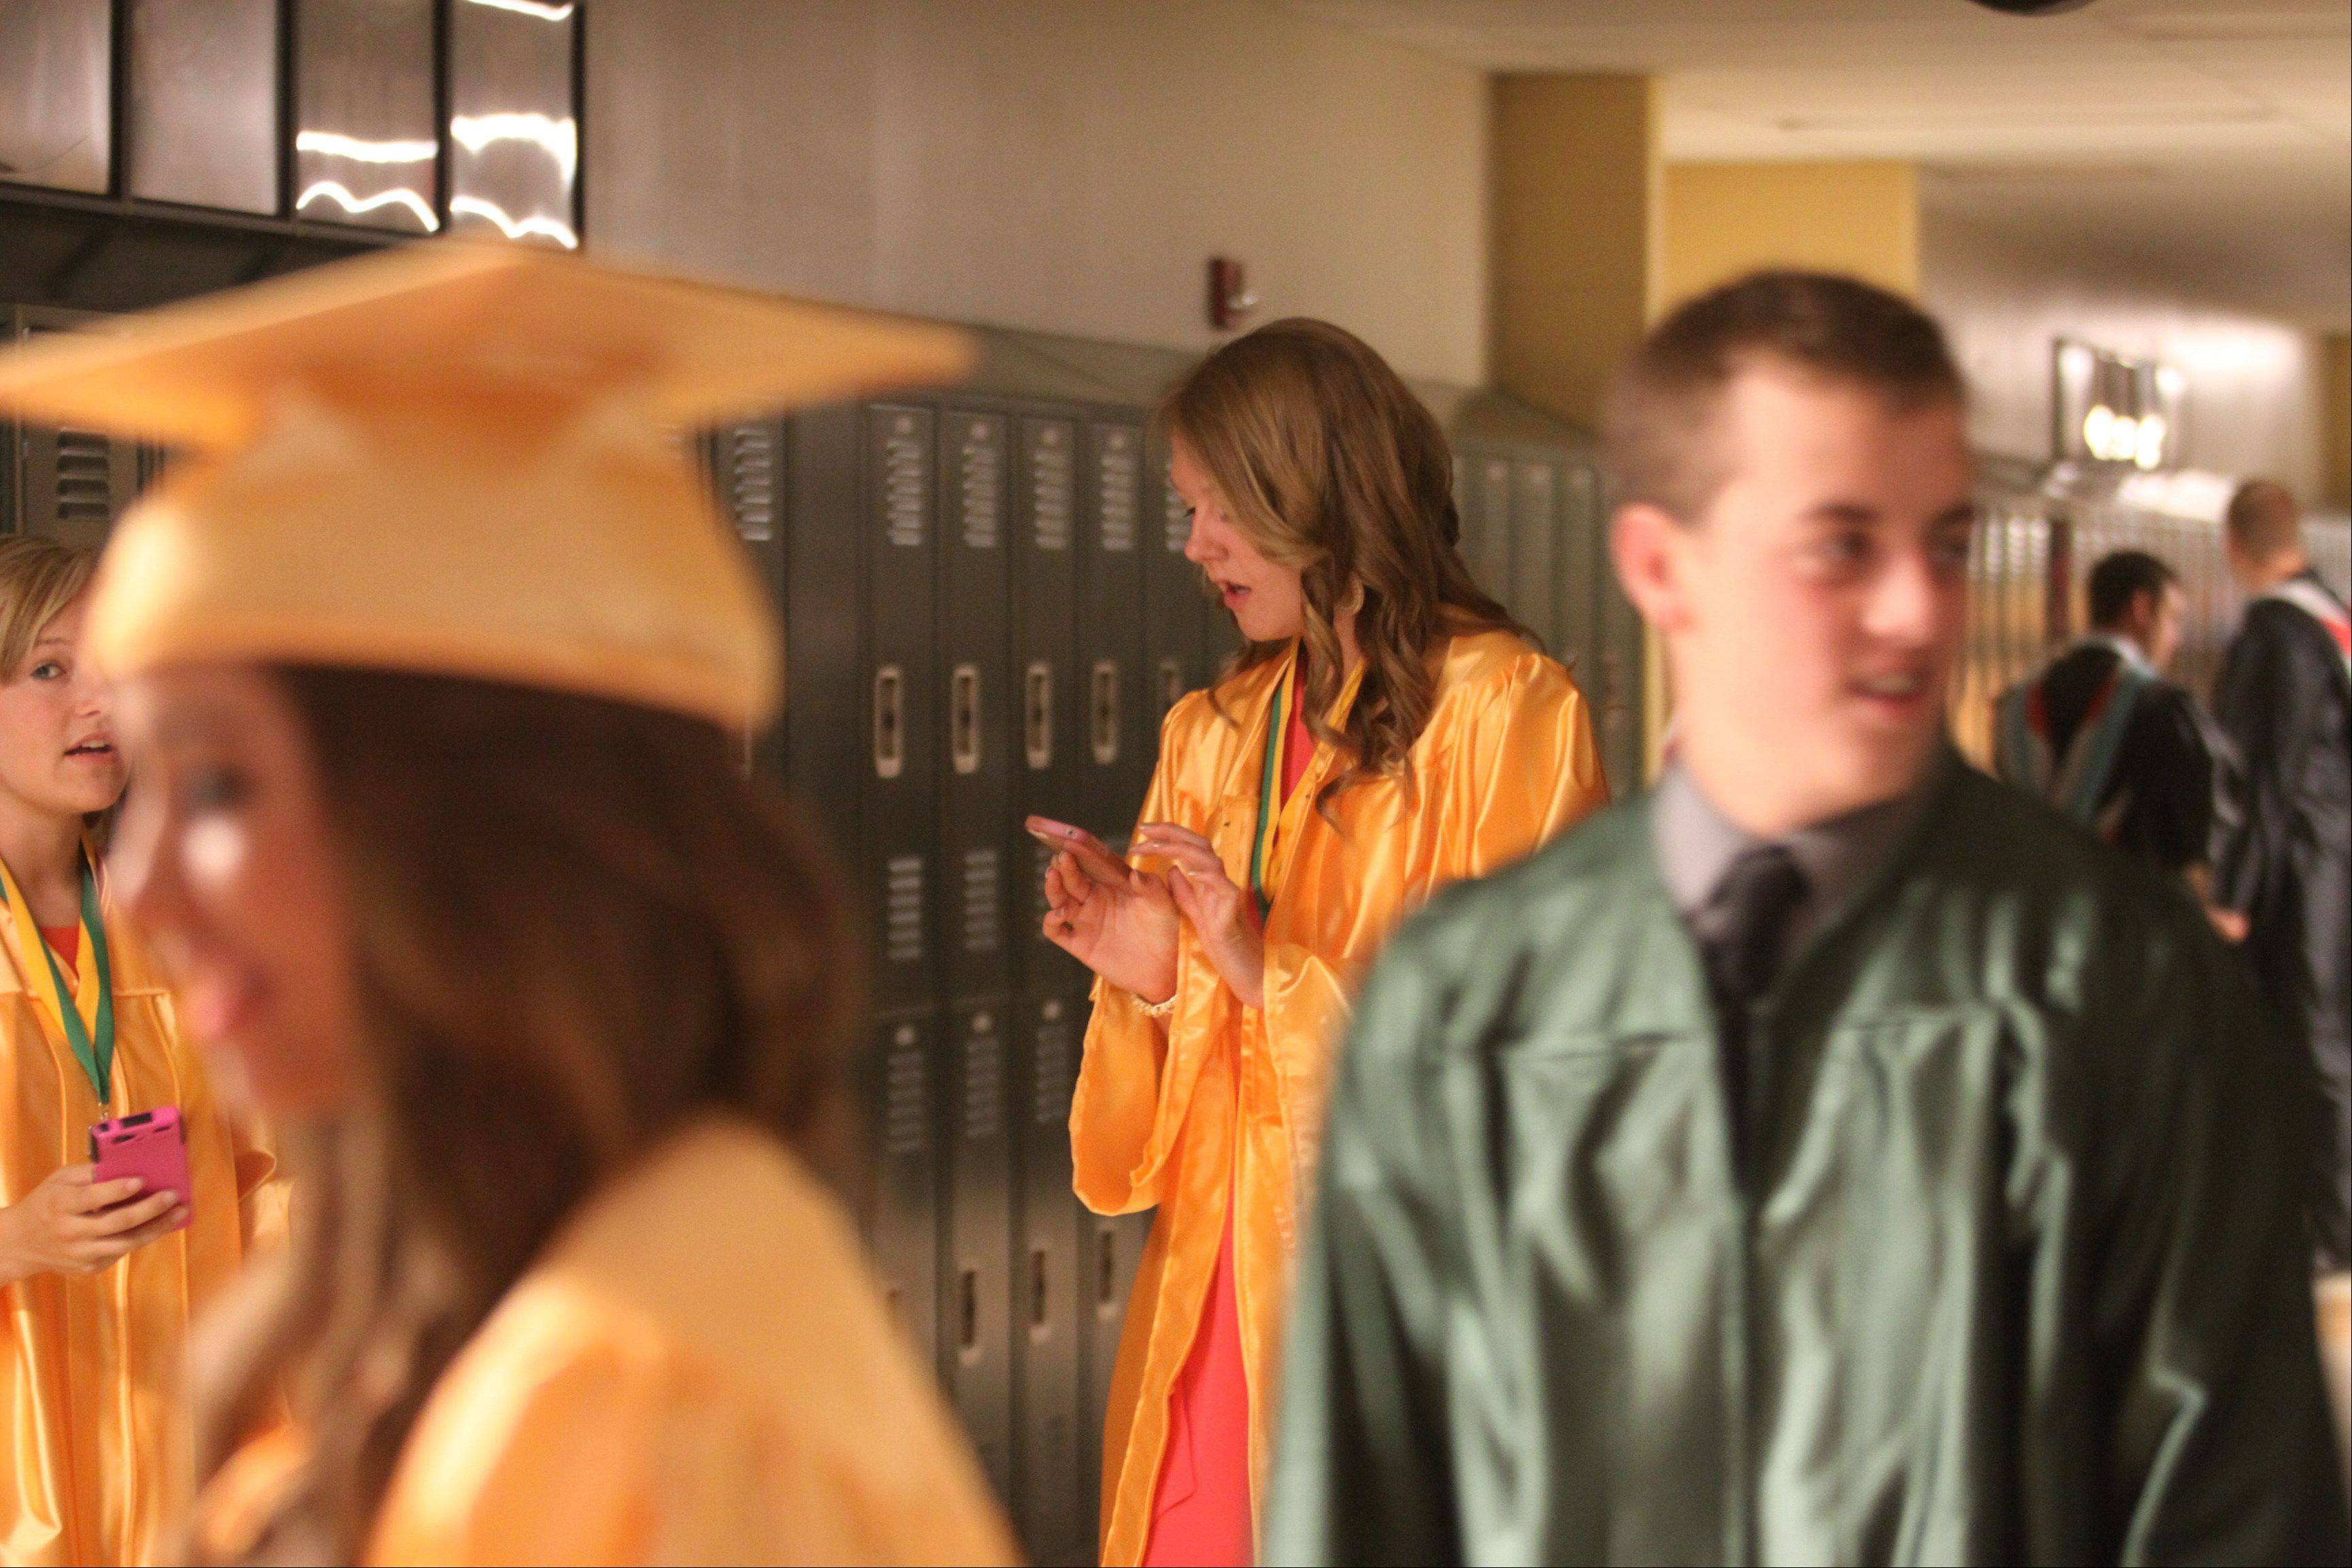 Images from the Crystal Lake South commencement ceremony Saturday, May 25, 2013 in Crystal Lake.